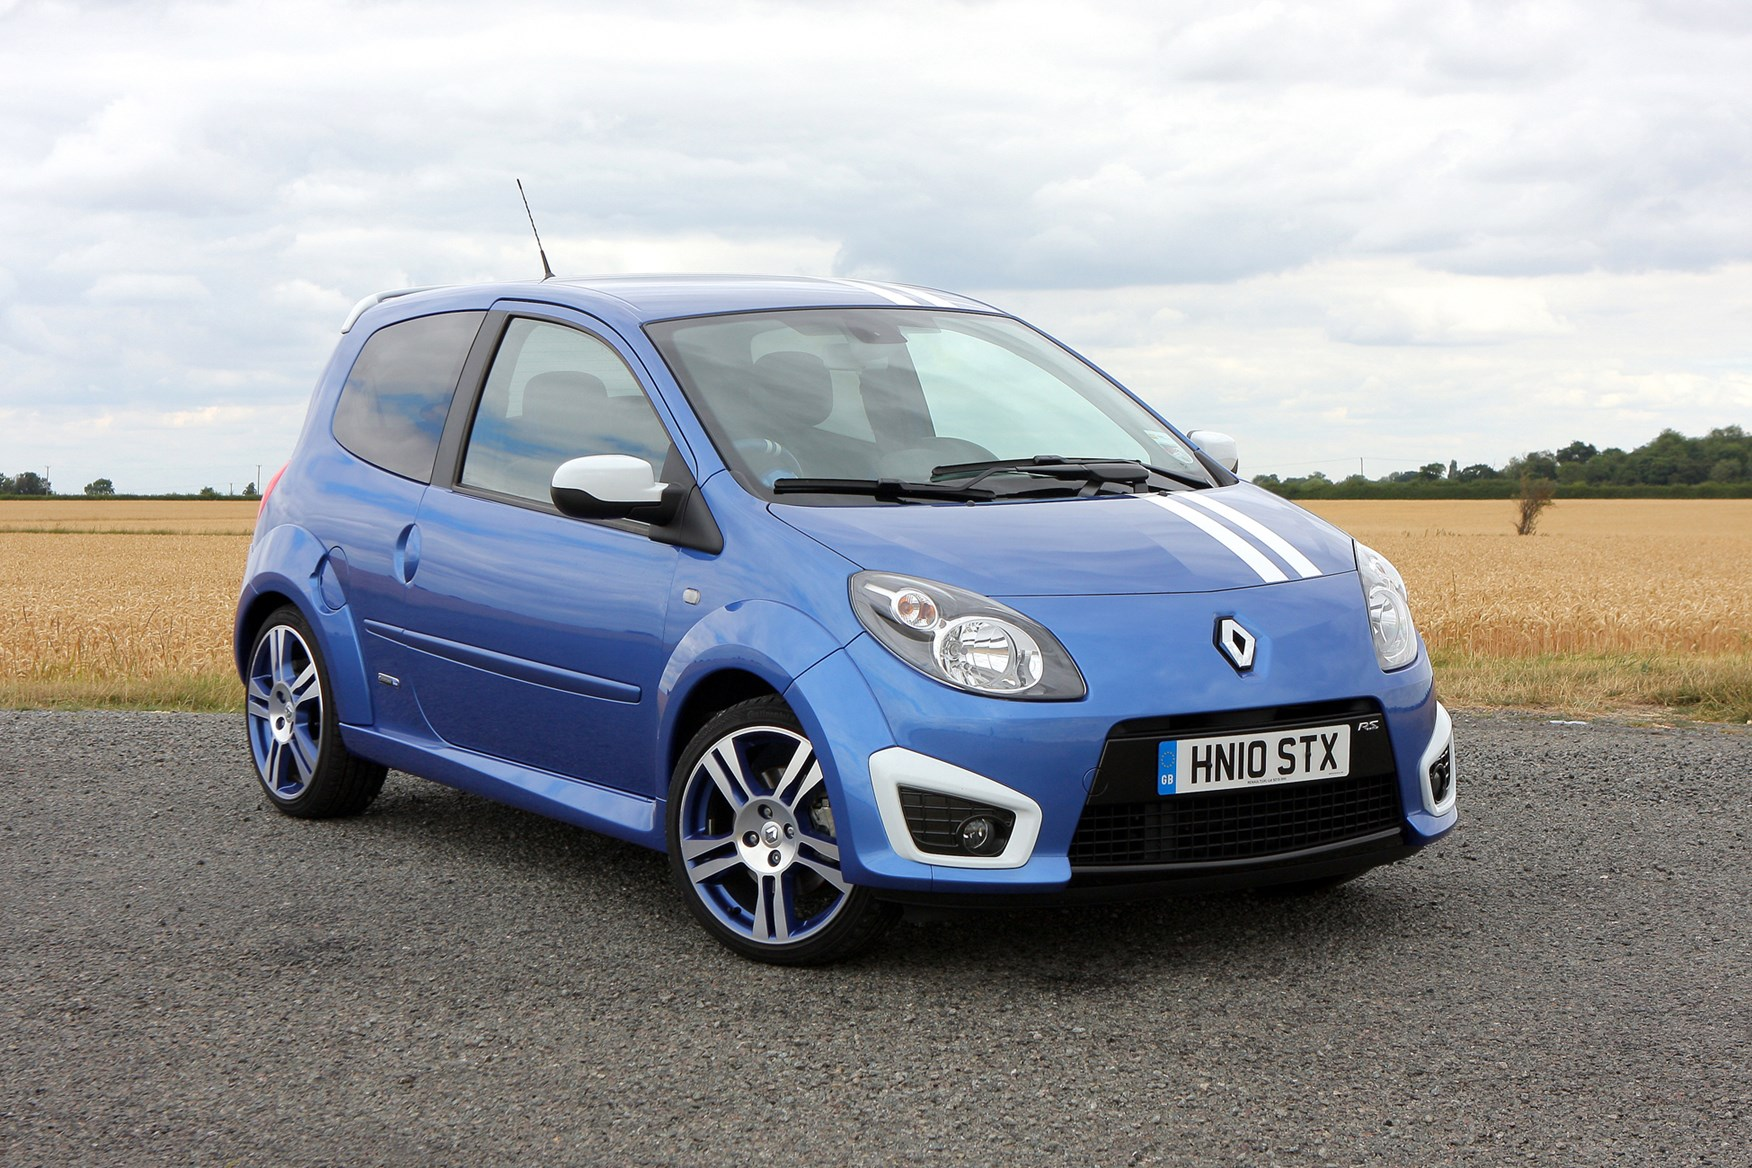 Used Renault Twingo Renaultsport (2008 - 2013) Review | Parkers